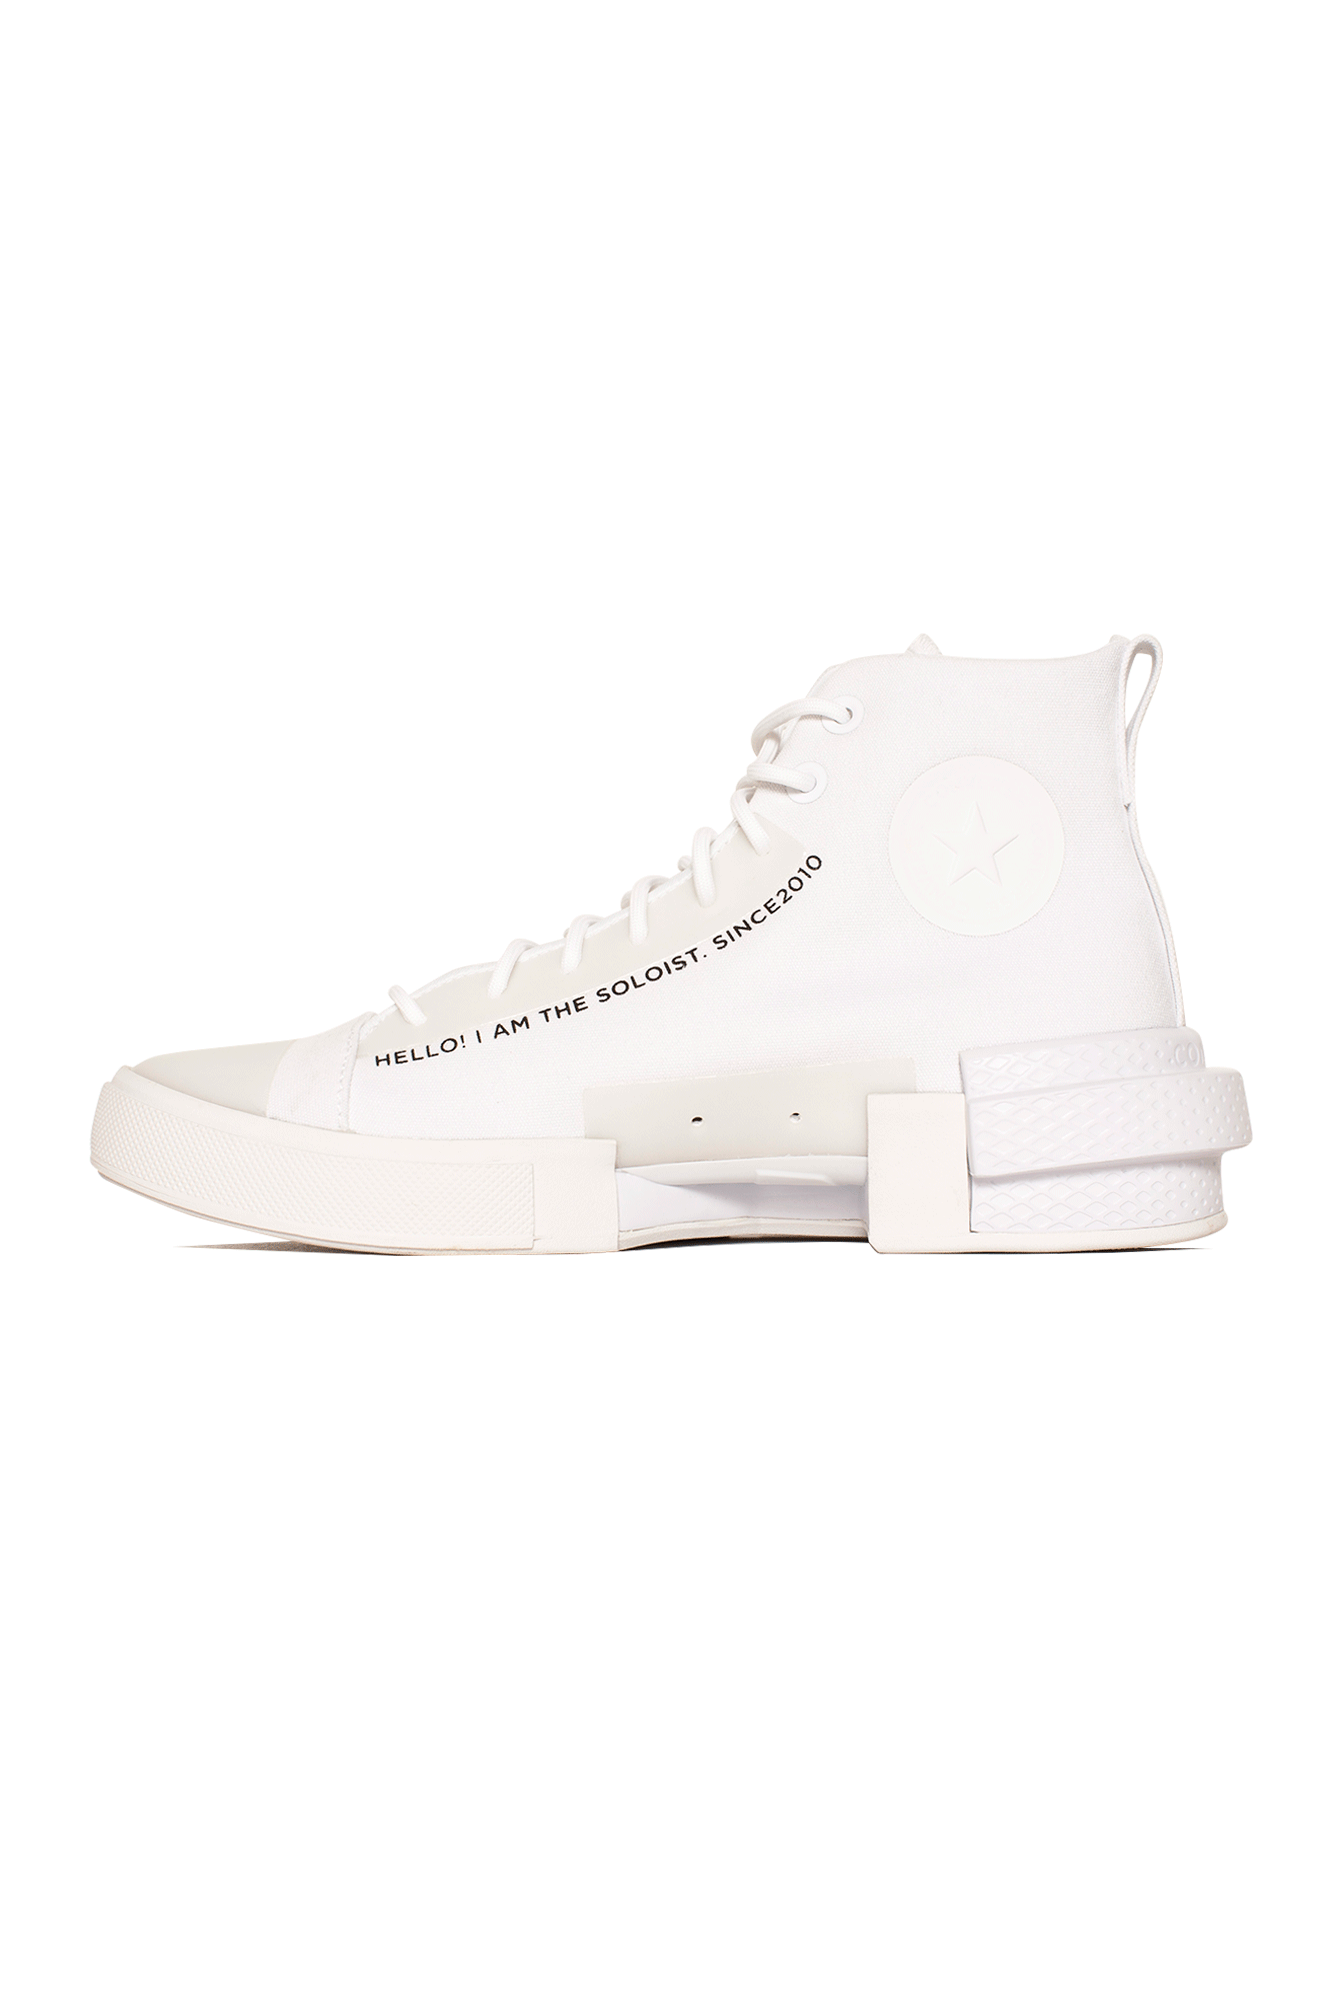 Converse Sneakers CX Disrupt x The Soloist Bianco 168214C